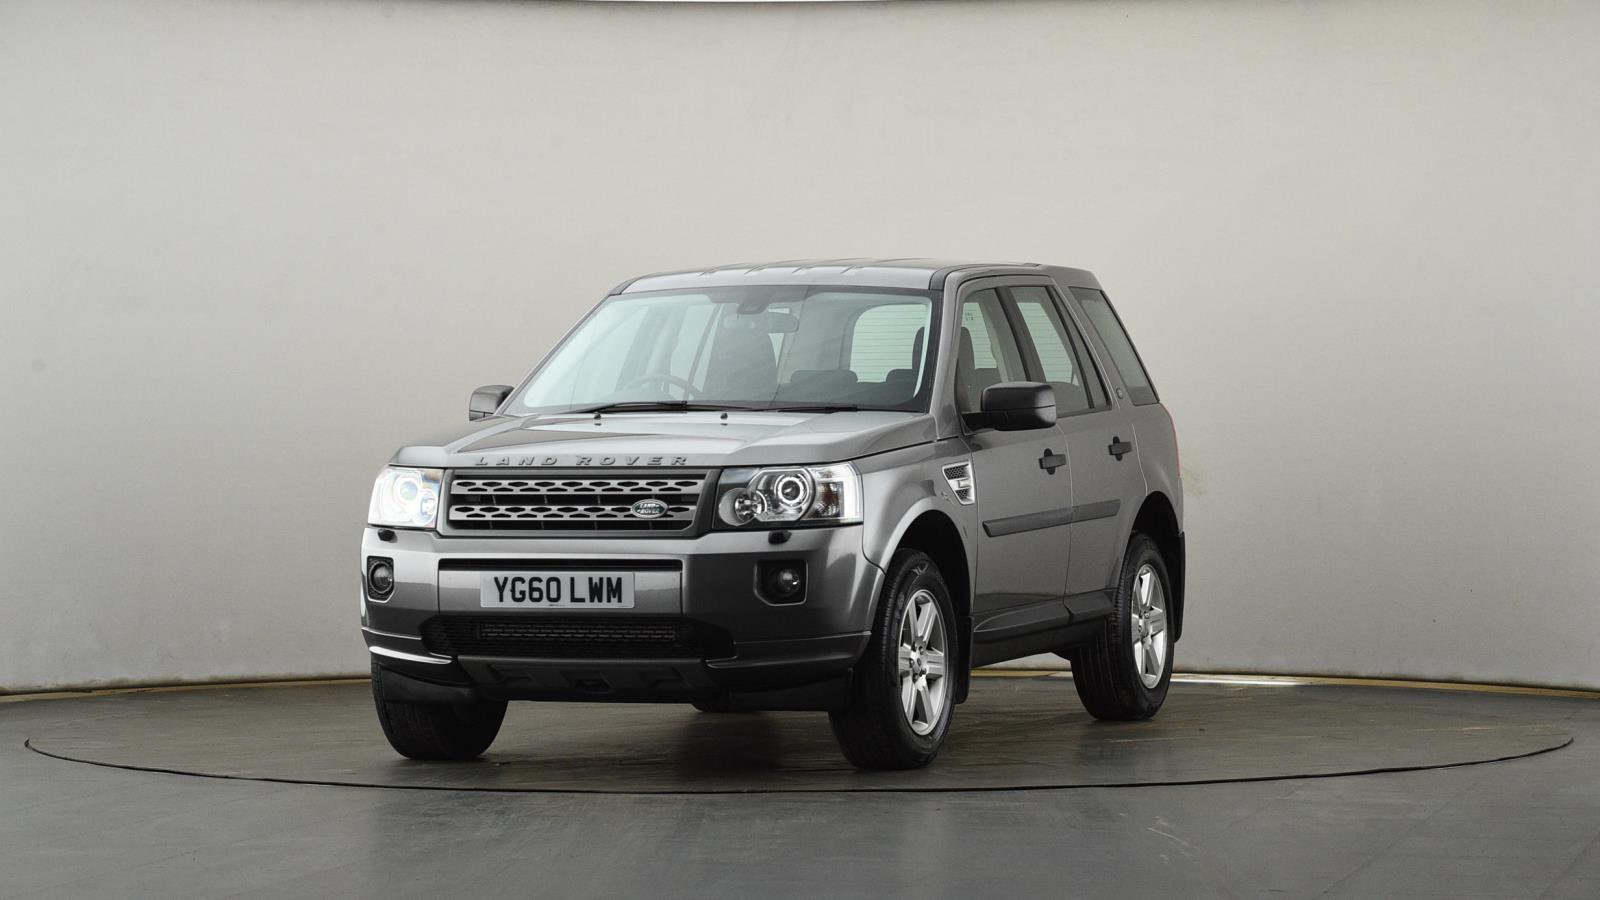 Used LAND ROVER FREELANDER 2 2 TD4 GS 5dr | Grey | YG60LWM